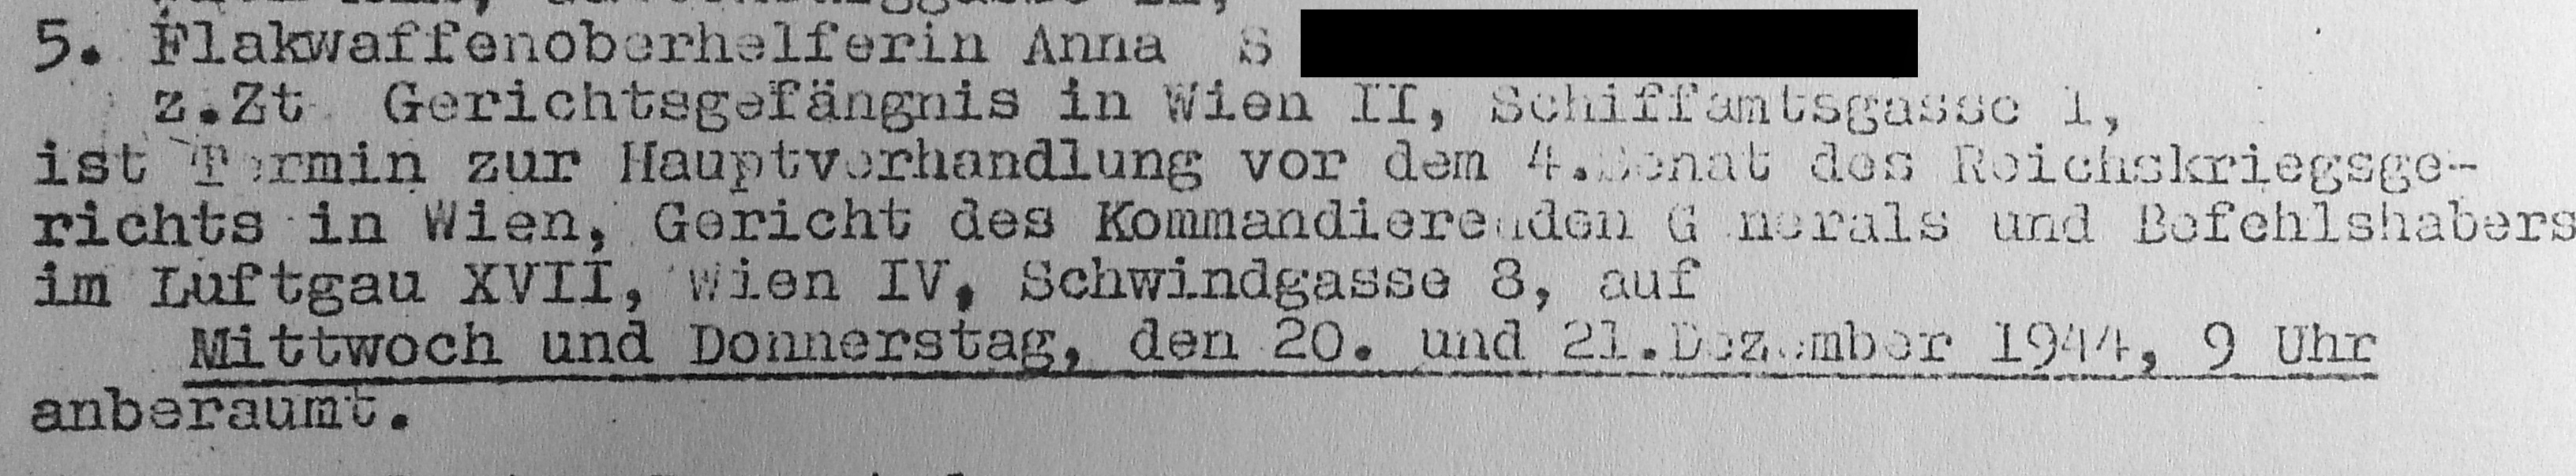 Excerpt from a notice of legal proceedings against members of a Styrian resistance group (OFF) regarding a court trial on Schwindgasse 8 (source: DÖW 21062/85C)